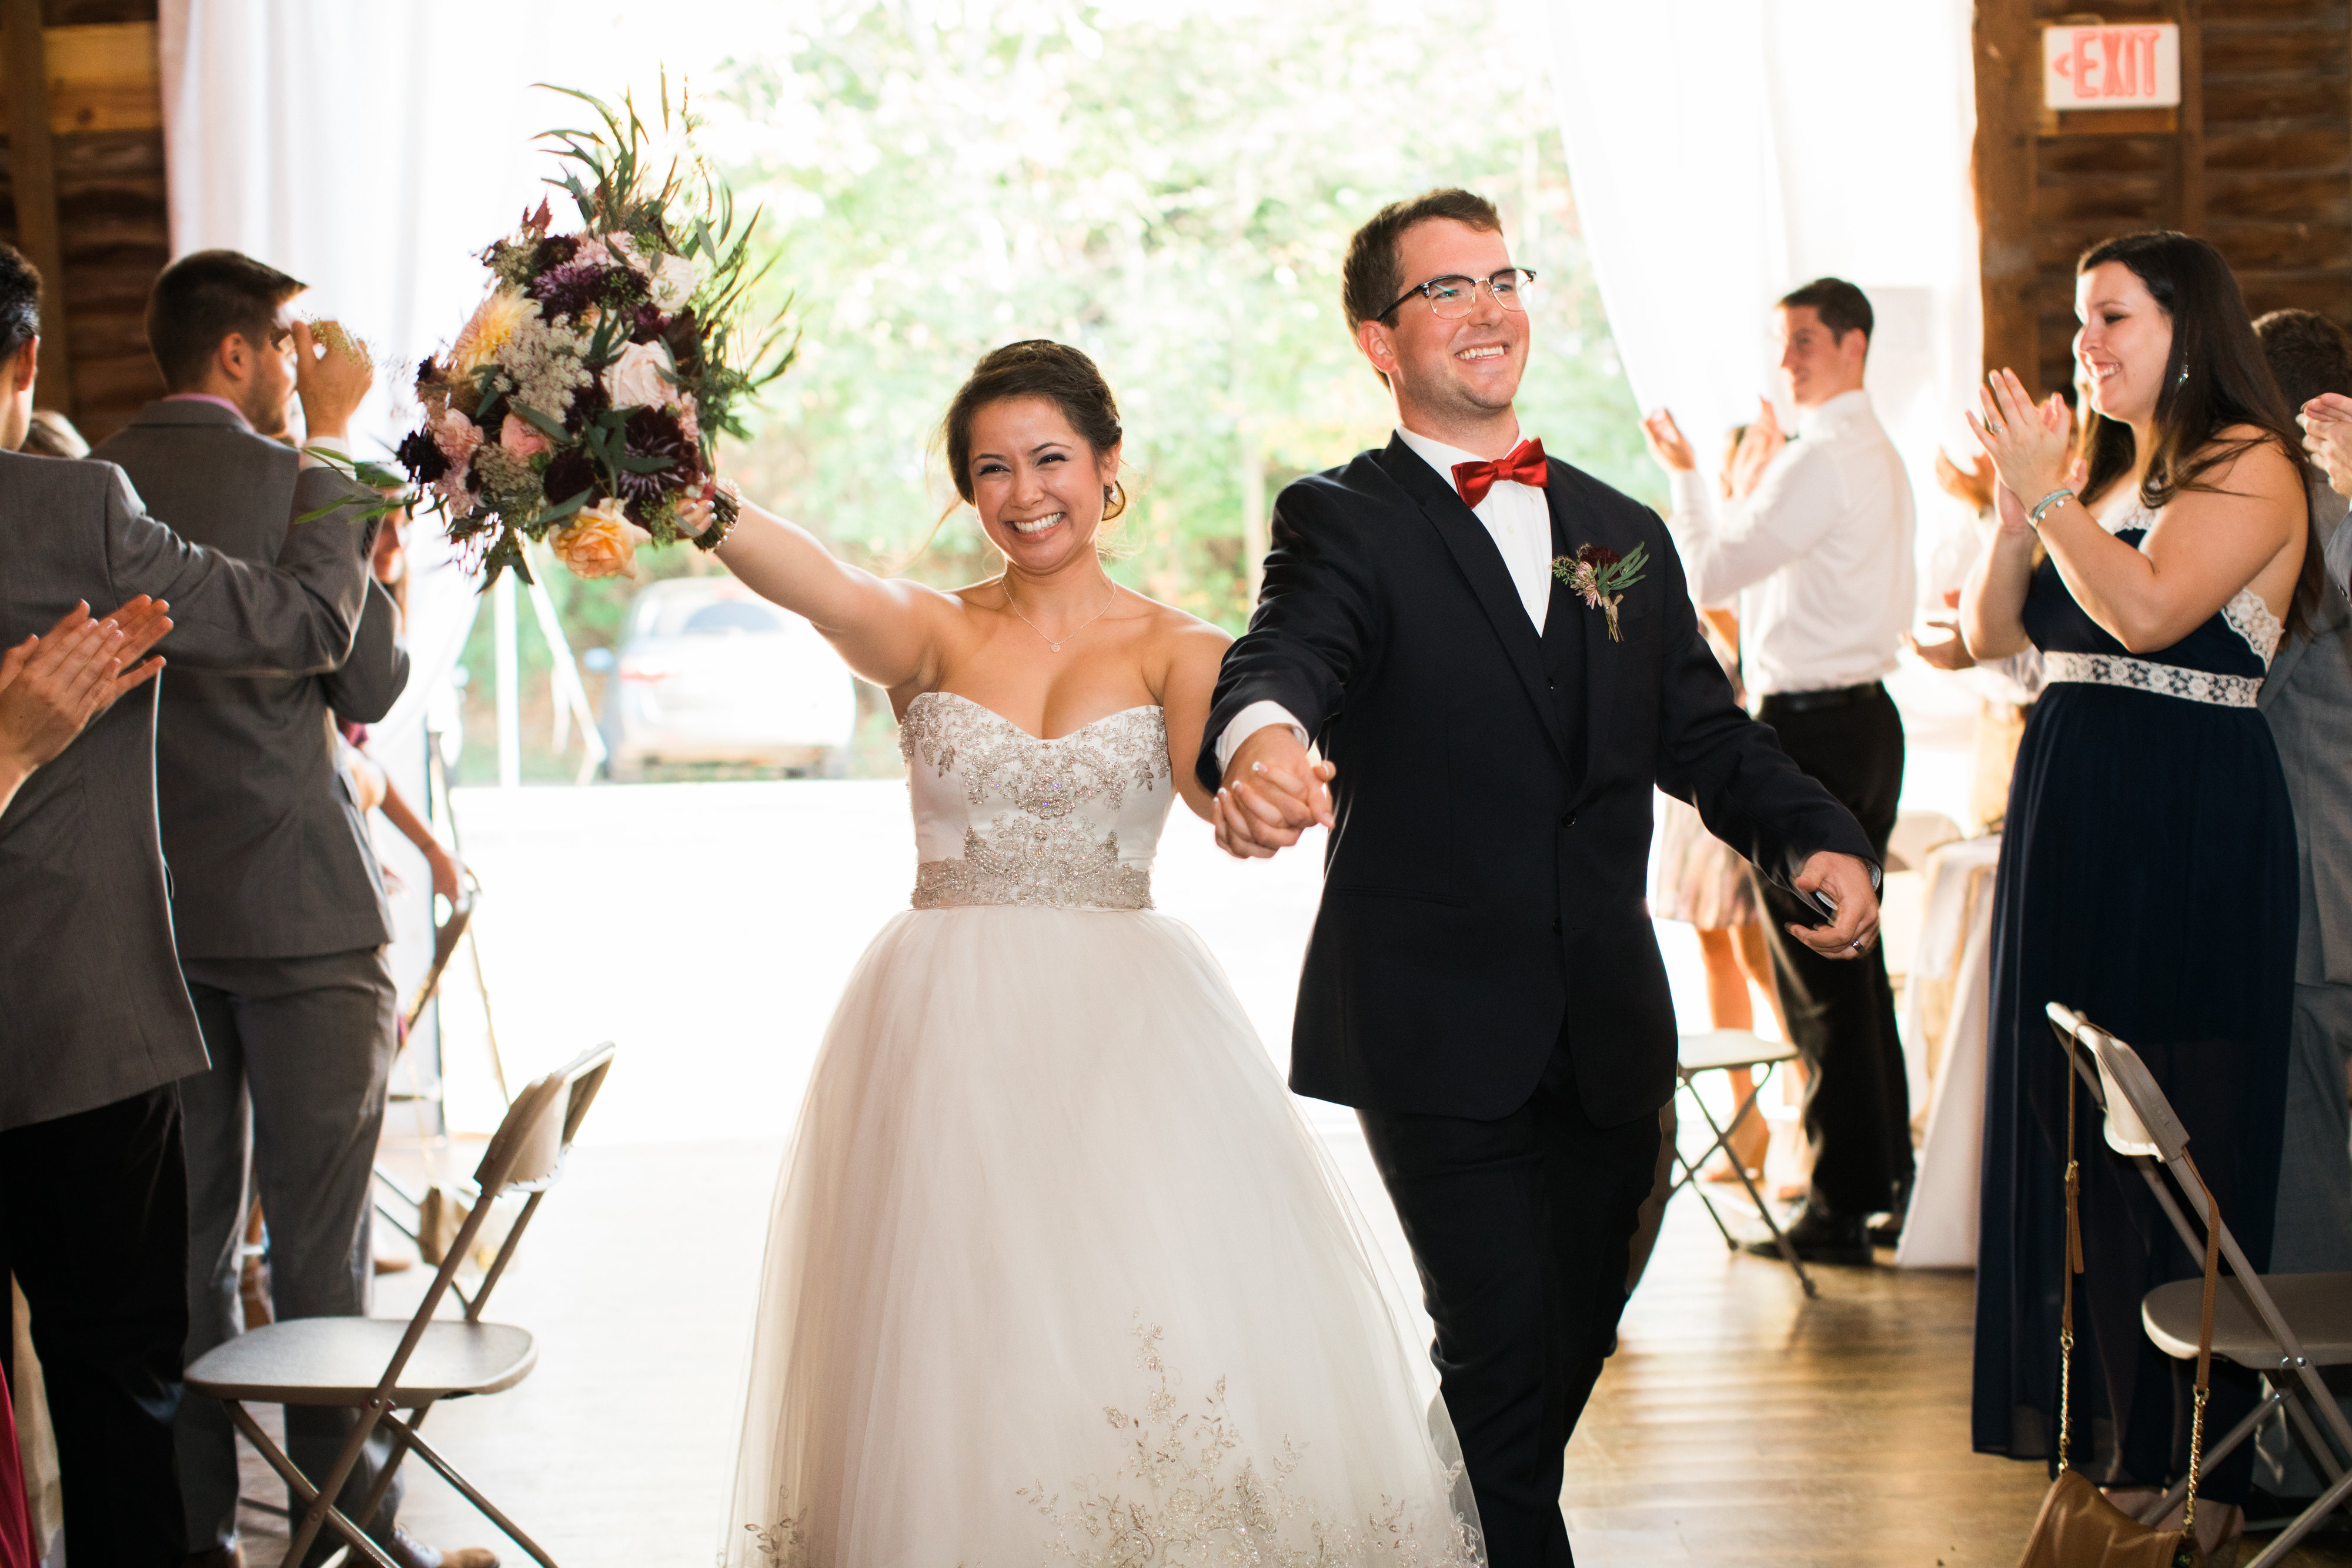 Robbie & Loucita's Wedding Day // Location: Culture Museum in Staunton, Virginia // Florist: Harmony Harvest Farm // Dress: Sealed with a Kiss in Charlottesville, Virginia // Photographer:  Miscellaneous Media Photography // (Photo credit: Miscellaneous Media Photography)